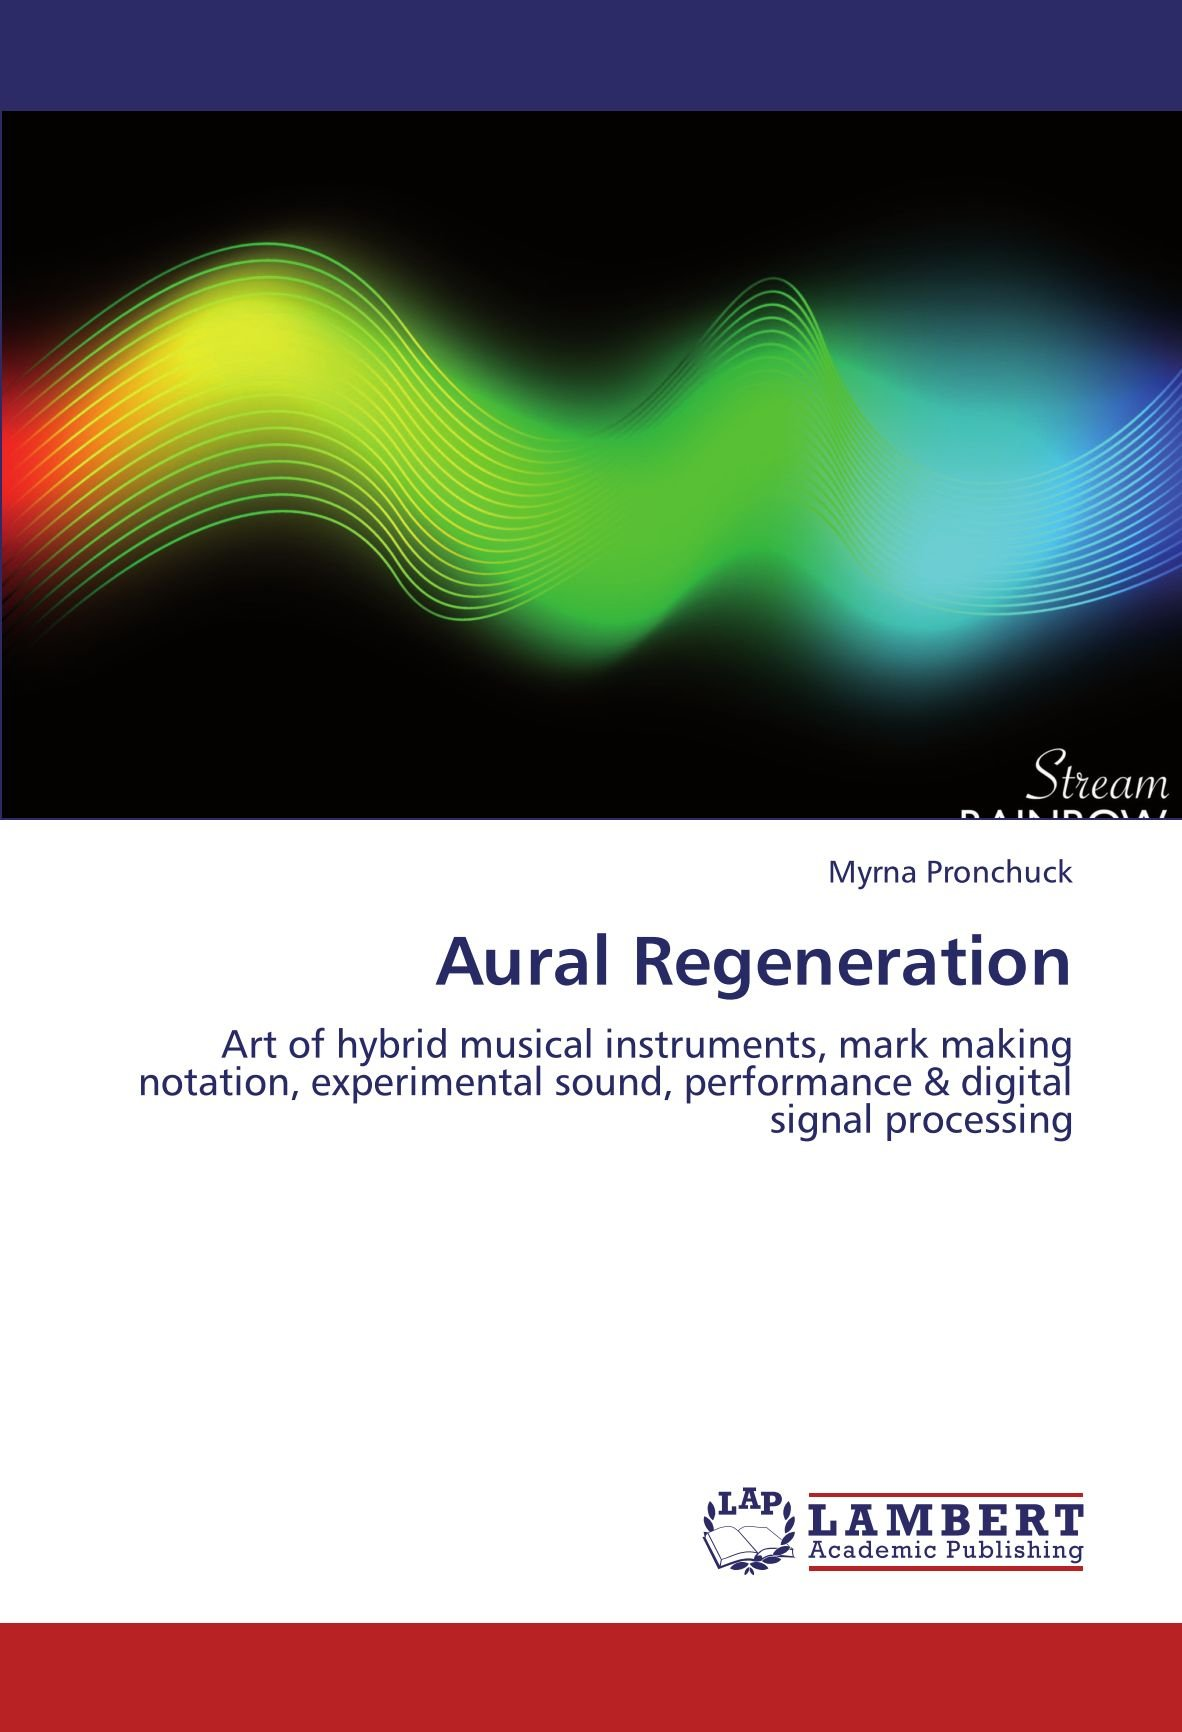 Download Aural Regeneration: Art of hybrid musical instruments, mark making notation, experimental sound, performance & digital signal processing ePub fb2 ebook